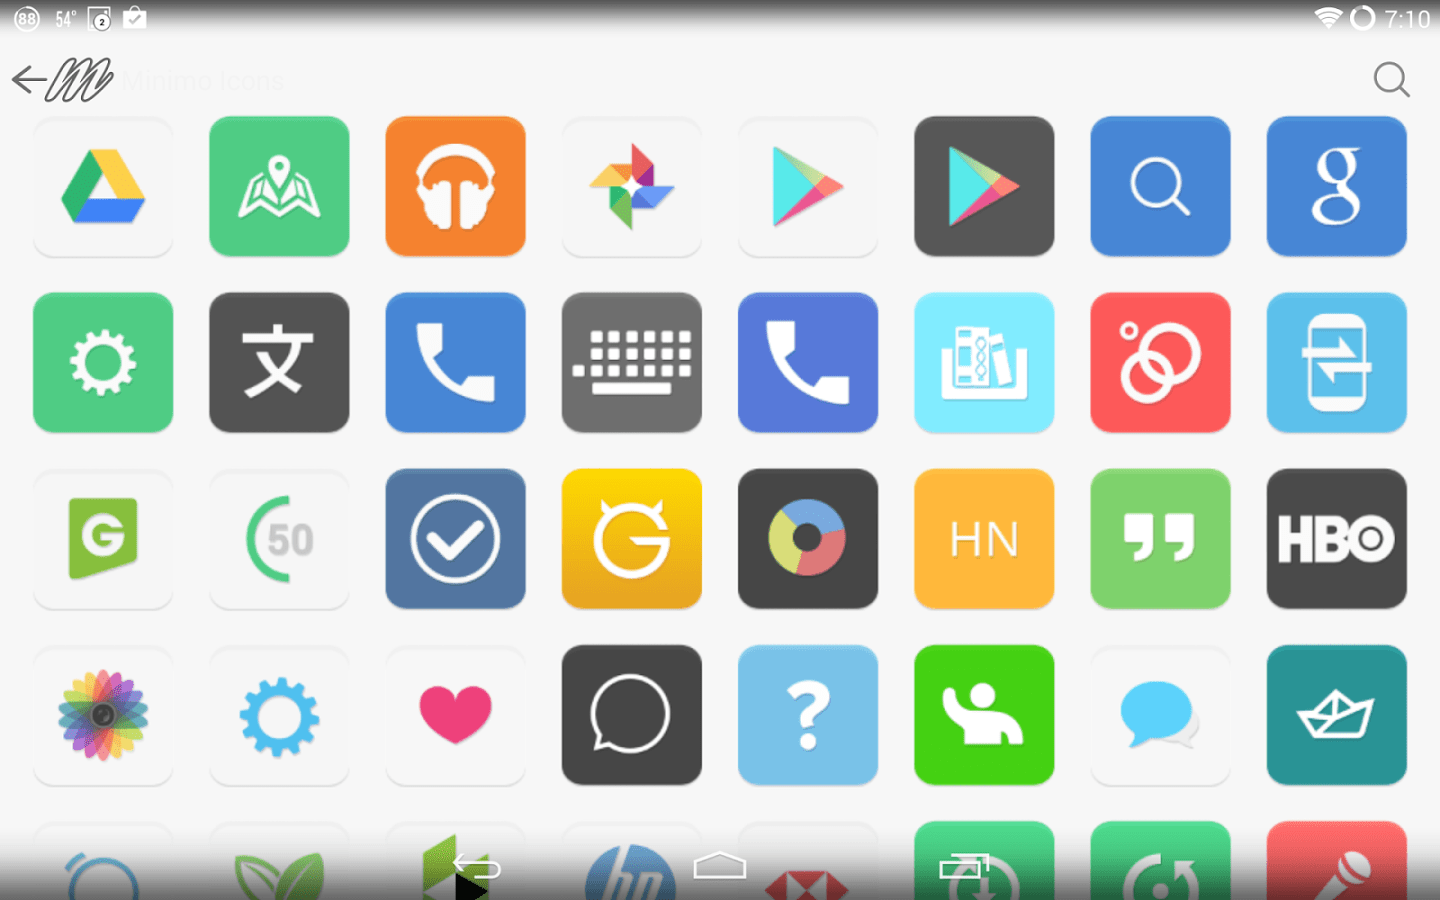 Change App Icons and Apk File Names in Android